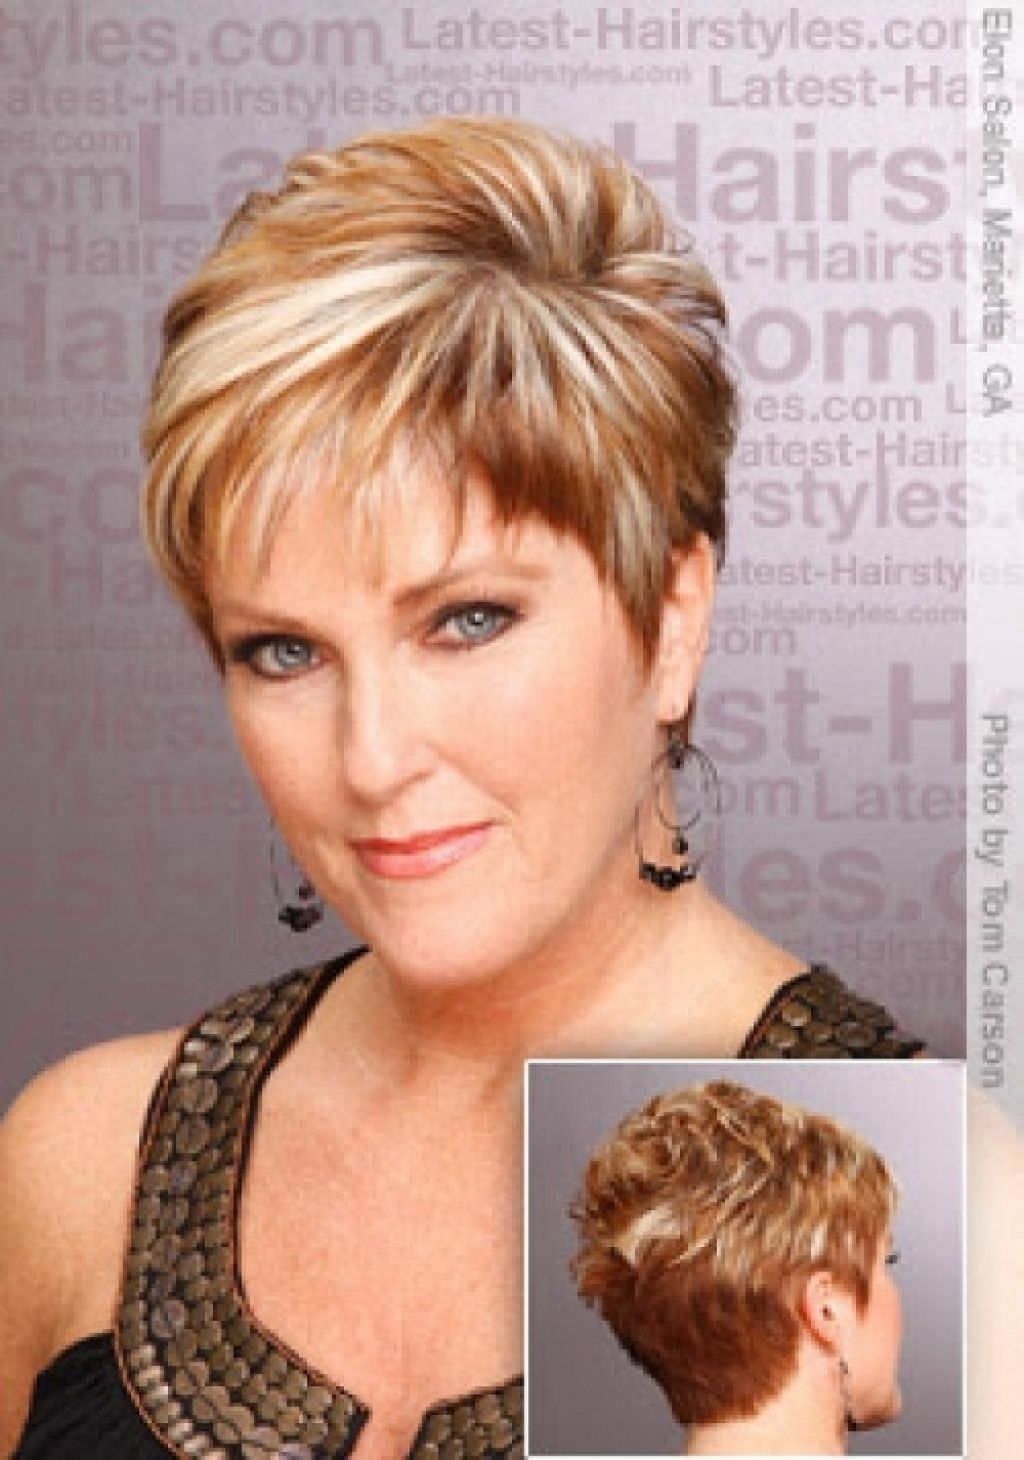 Most Popular Contemporary Pixie Hairstyles Throughout 3 New Short Bob Hairdos For The Contemporary Woman (View 17 of 20)